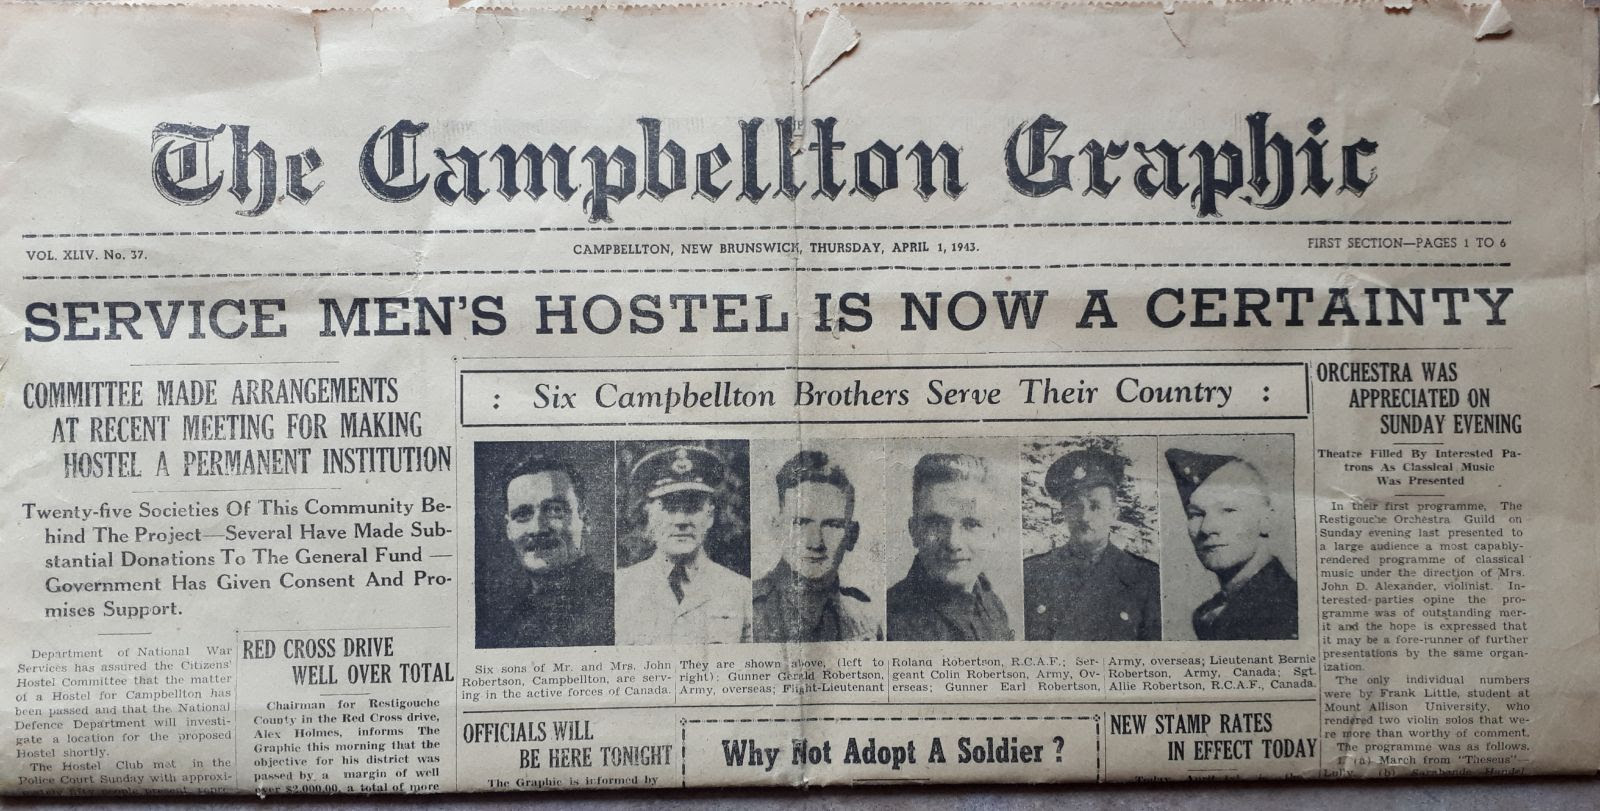 The fighting Robertson brothers of Campbellton, N.B.